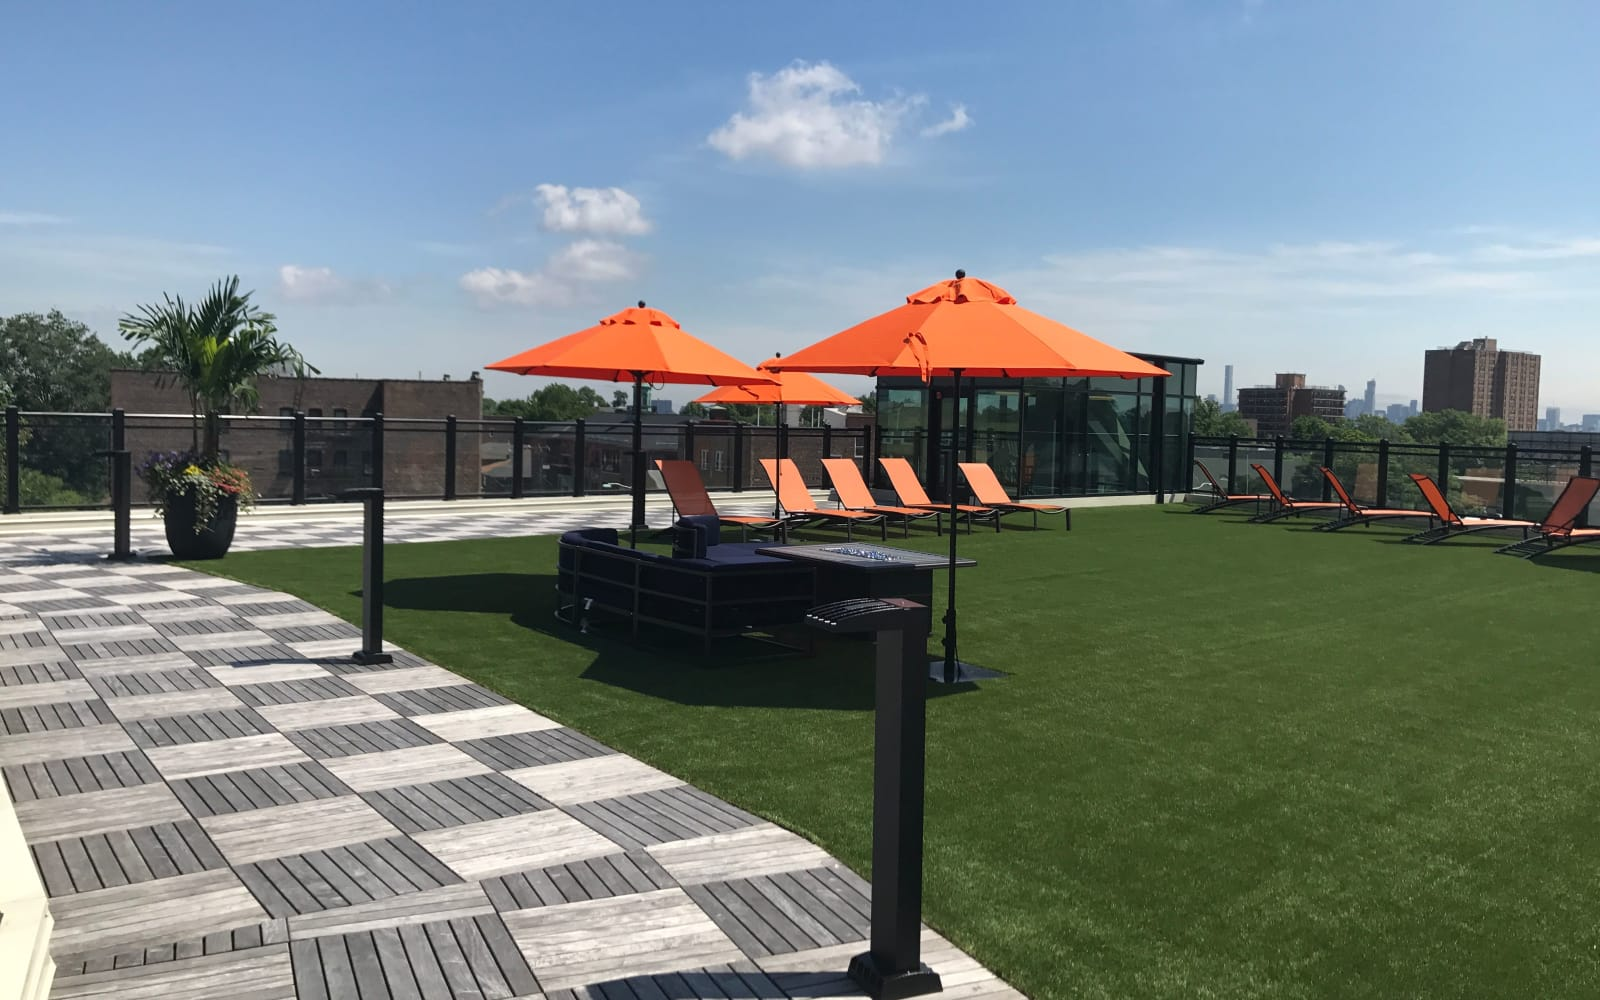 Outdoor amenities at The Centre in Cliffside Park, NJ